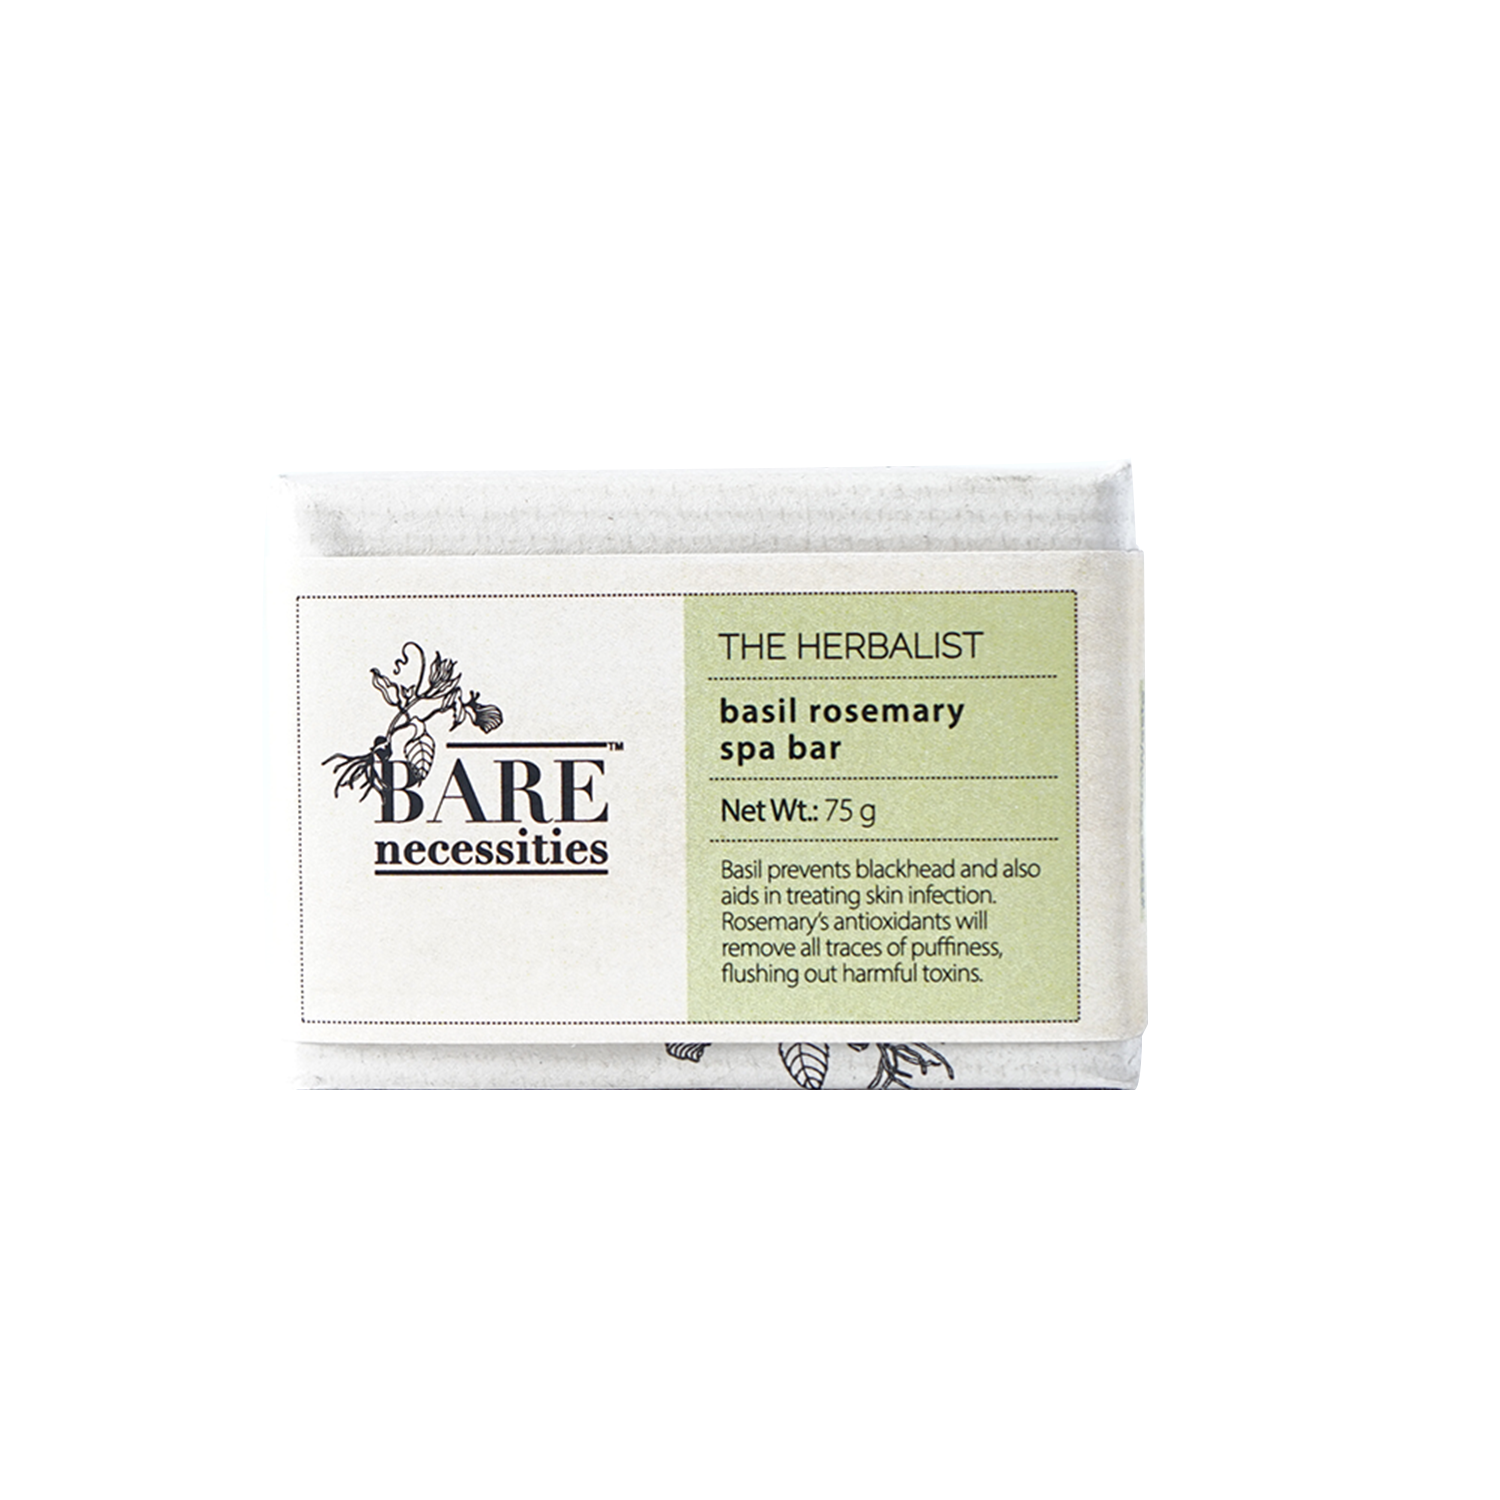 Bare Necessities Basil Rosemary Spa Bar : The Herbalist 75g